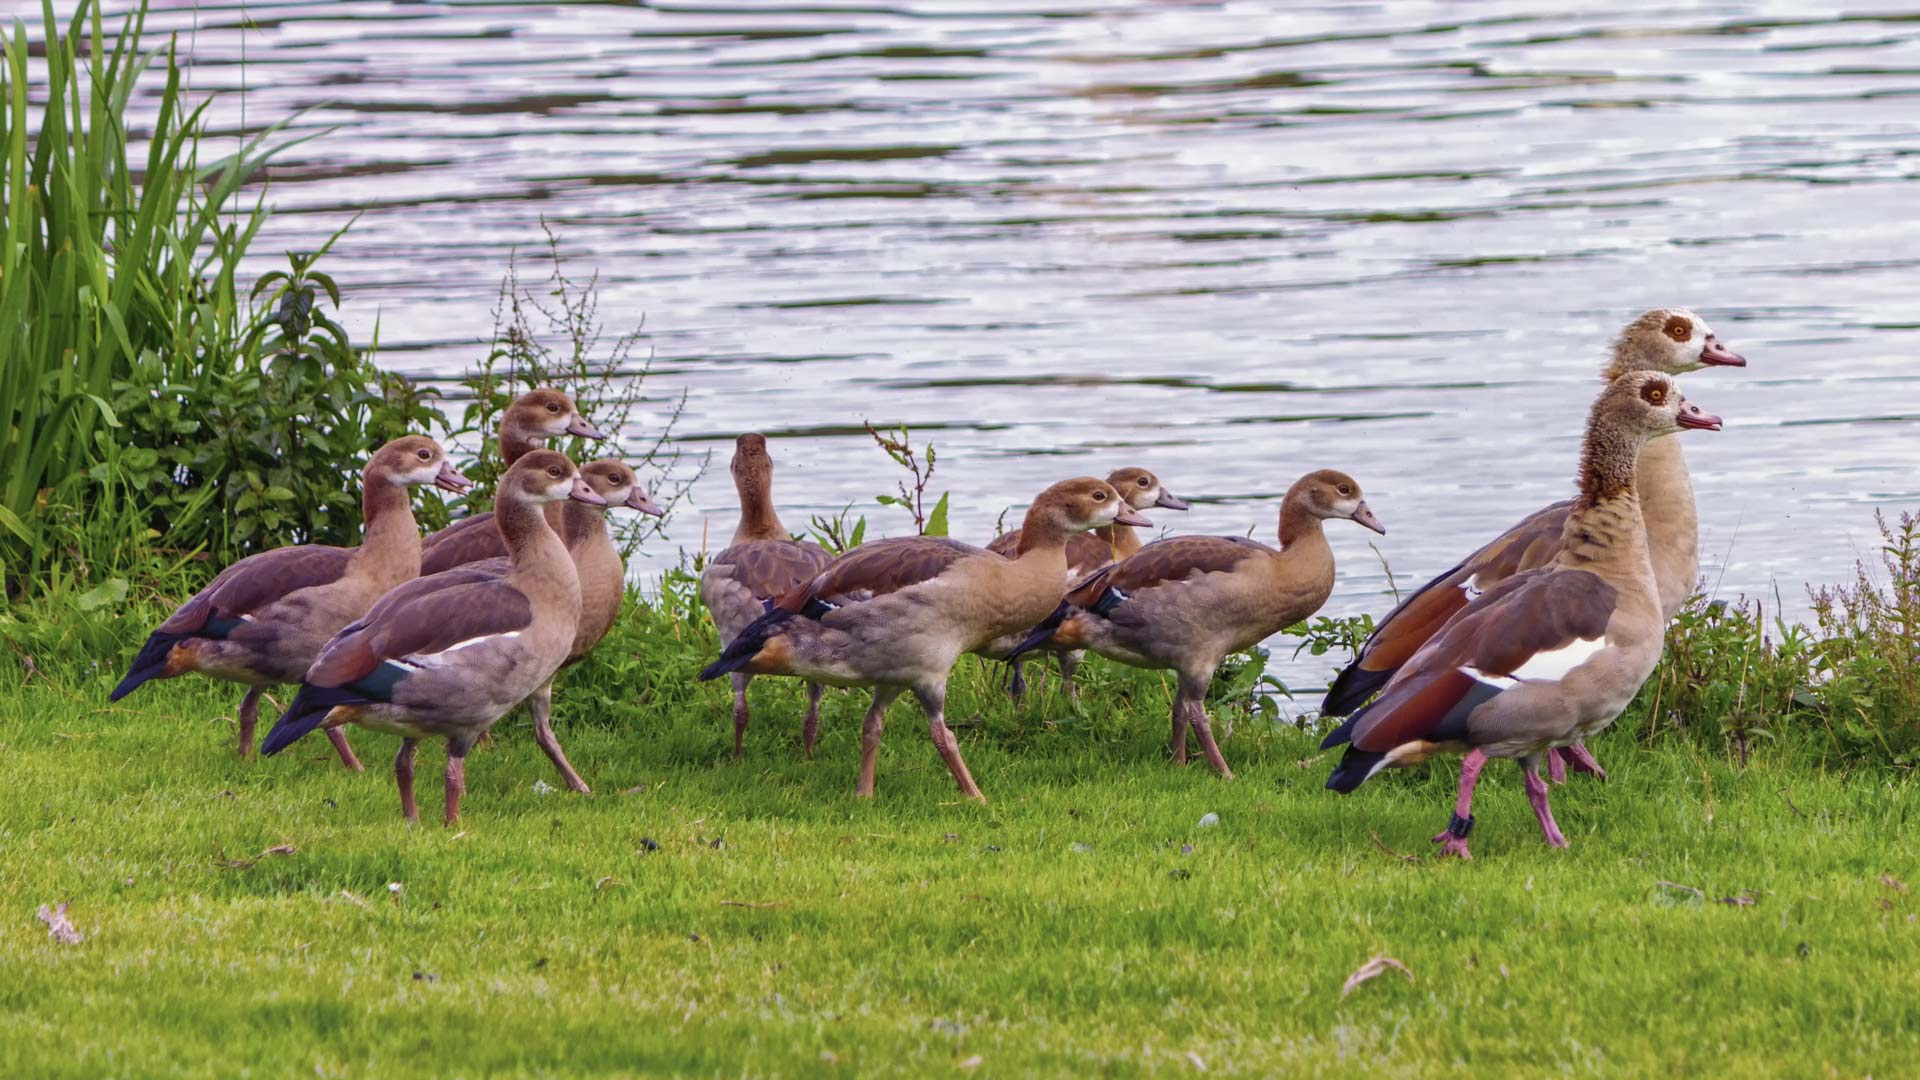 Egyptian goose, alopochen aegyptiacus,and babies walking on the grass near the water